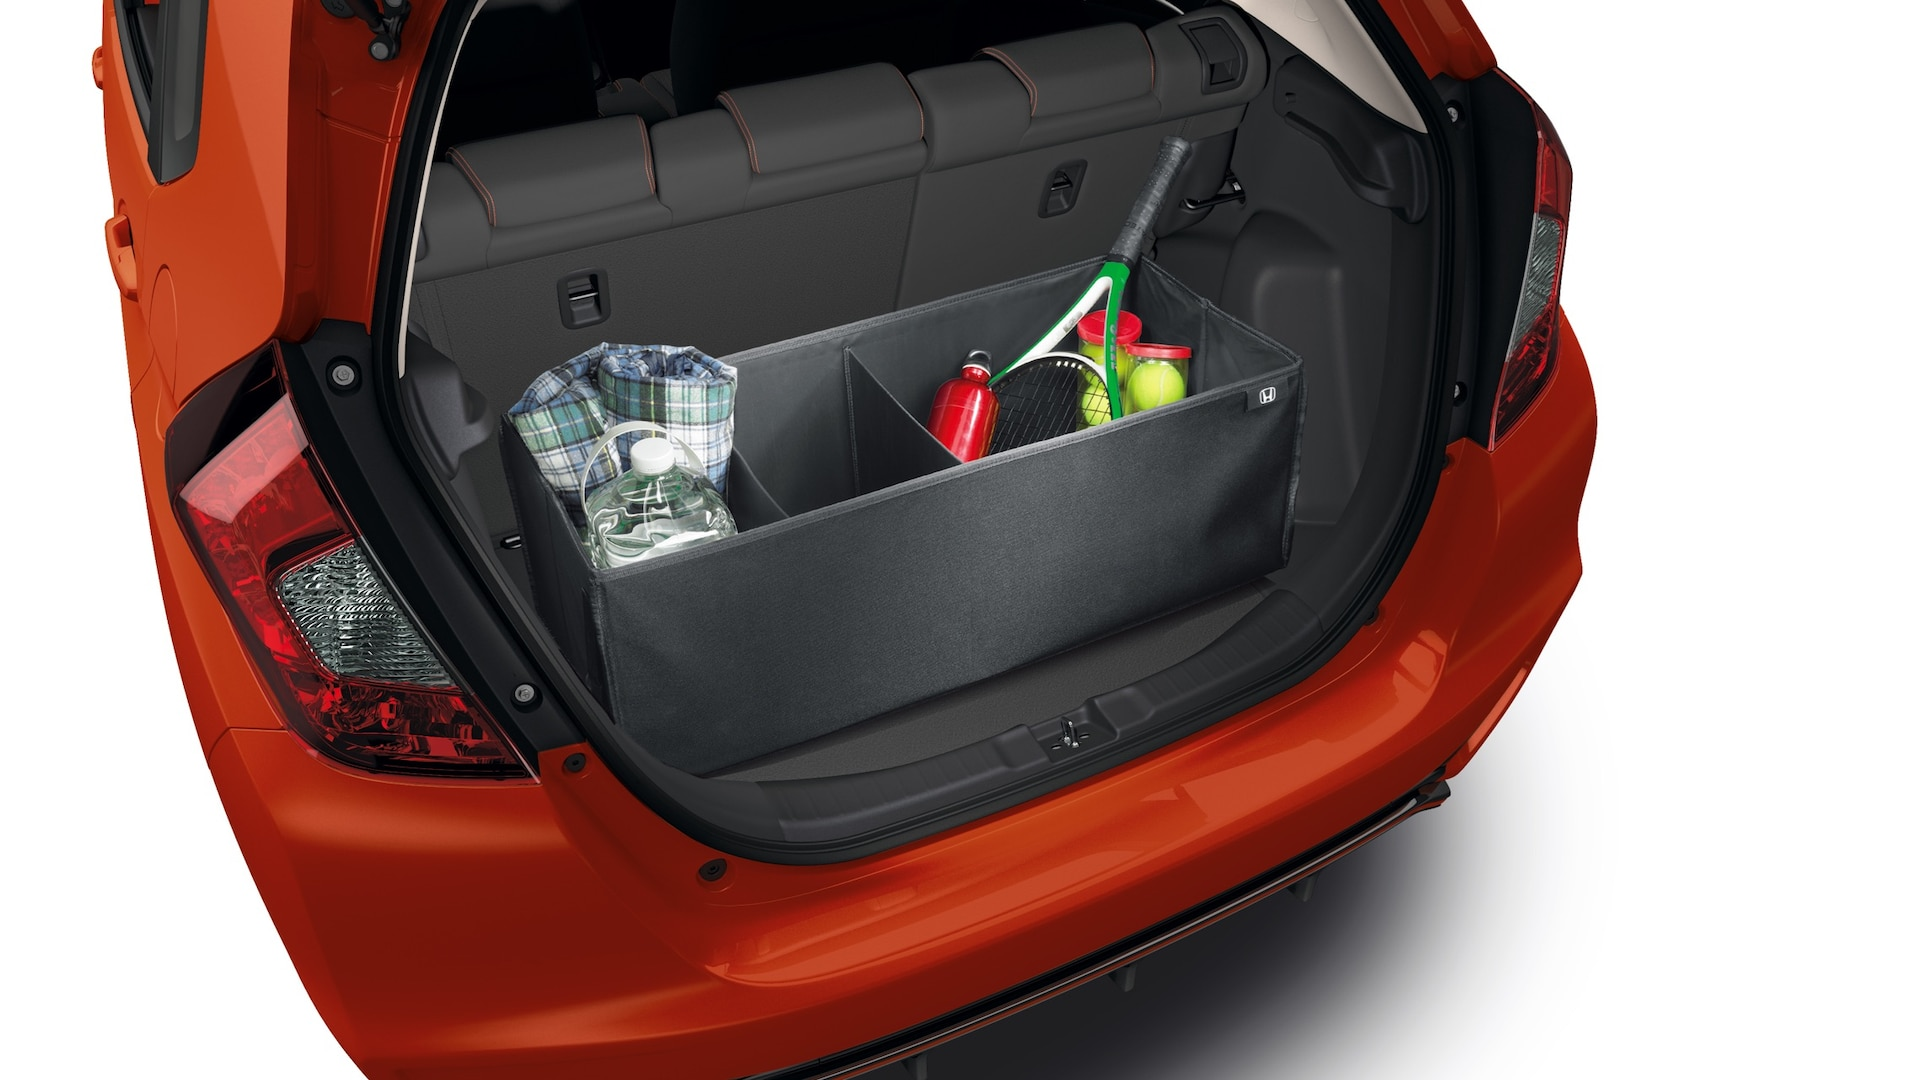 Rear interior view of cargo organizer detail on the 2020 Honda Fit.